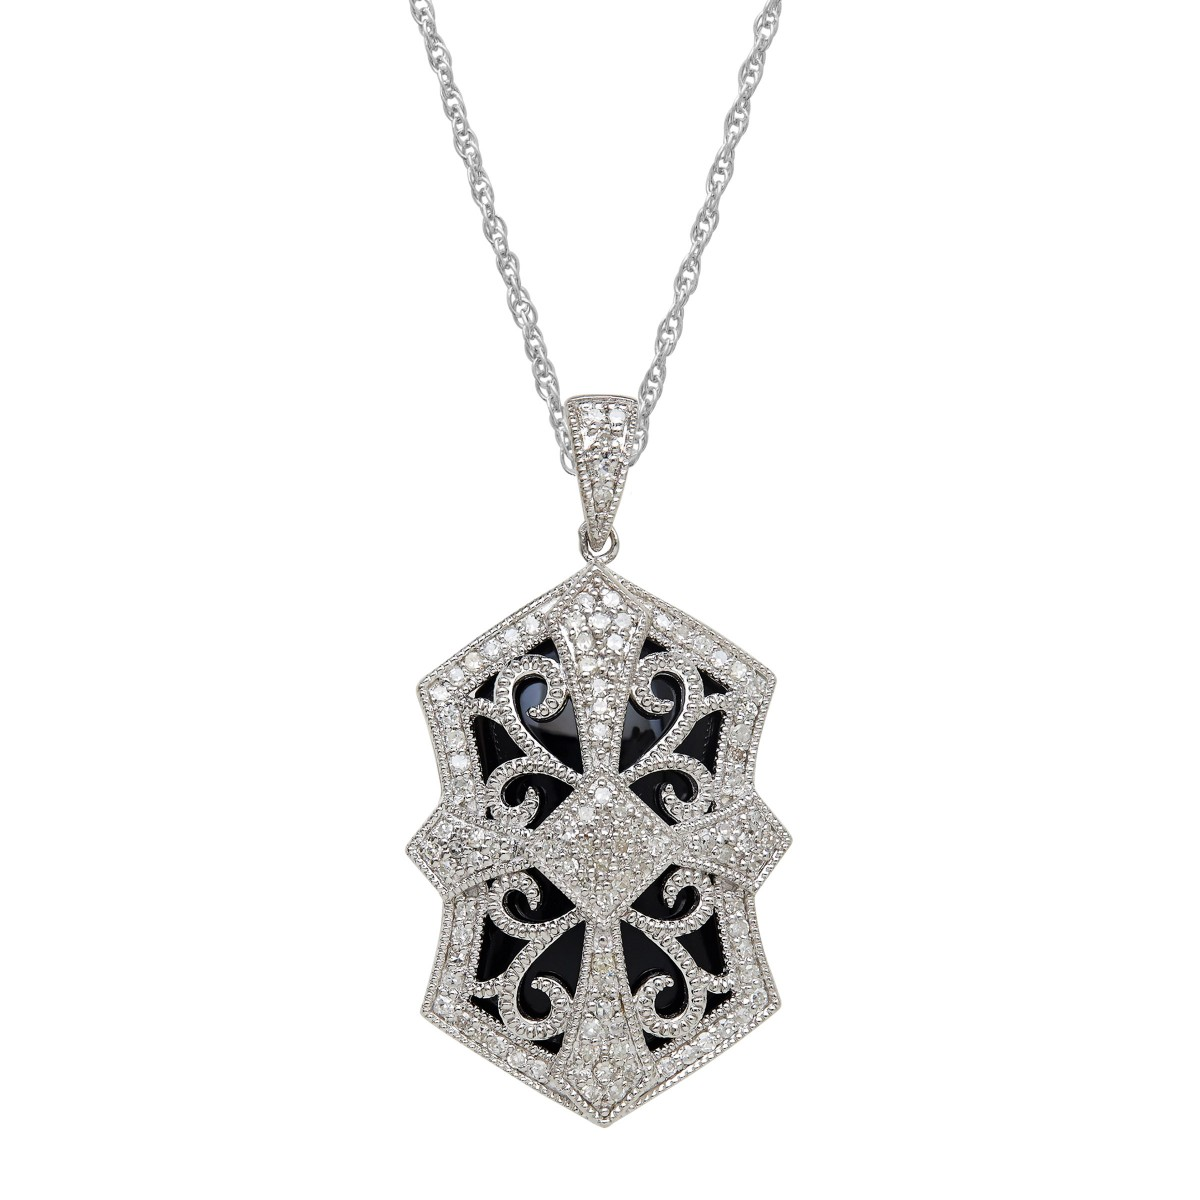 8ct Onyx, Silver and Diamond Art Deco Pendant